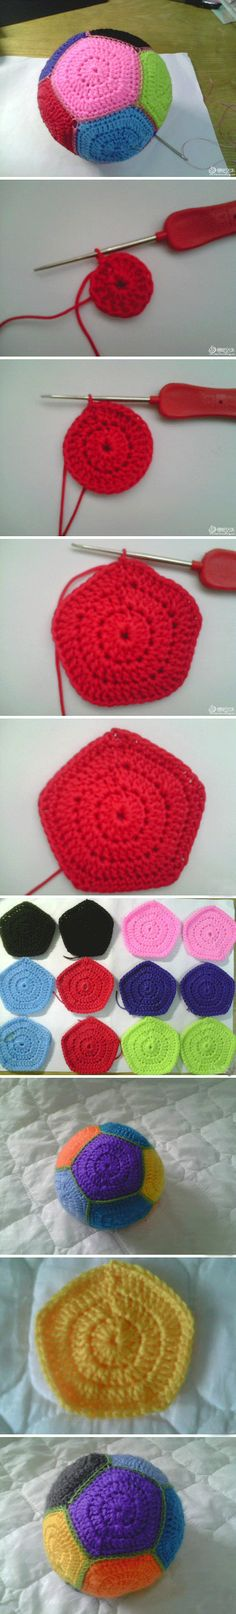 Crochet Granny Ball - Tutorial ❥ 4U // hf